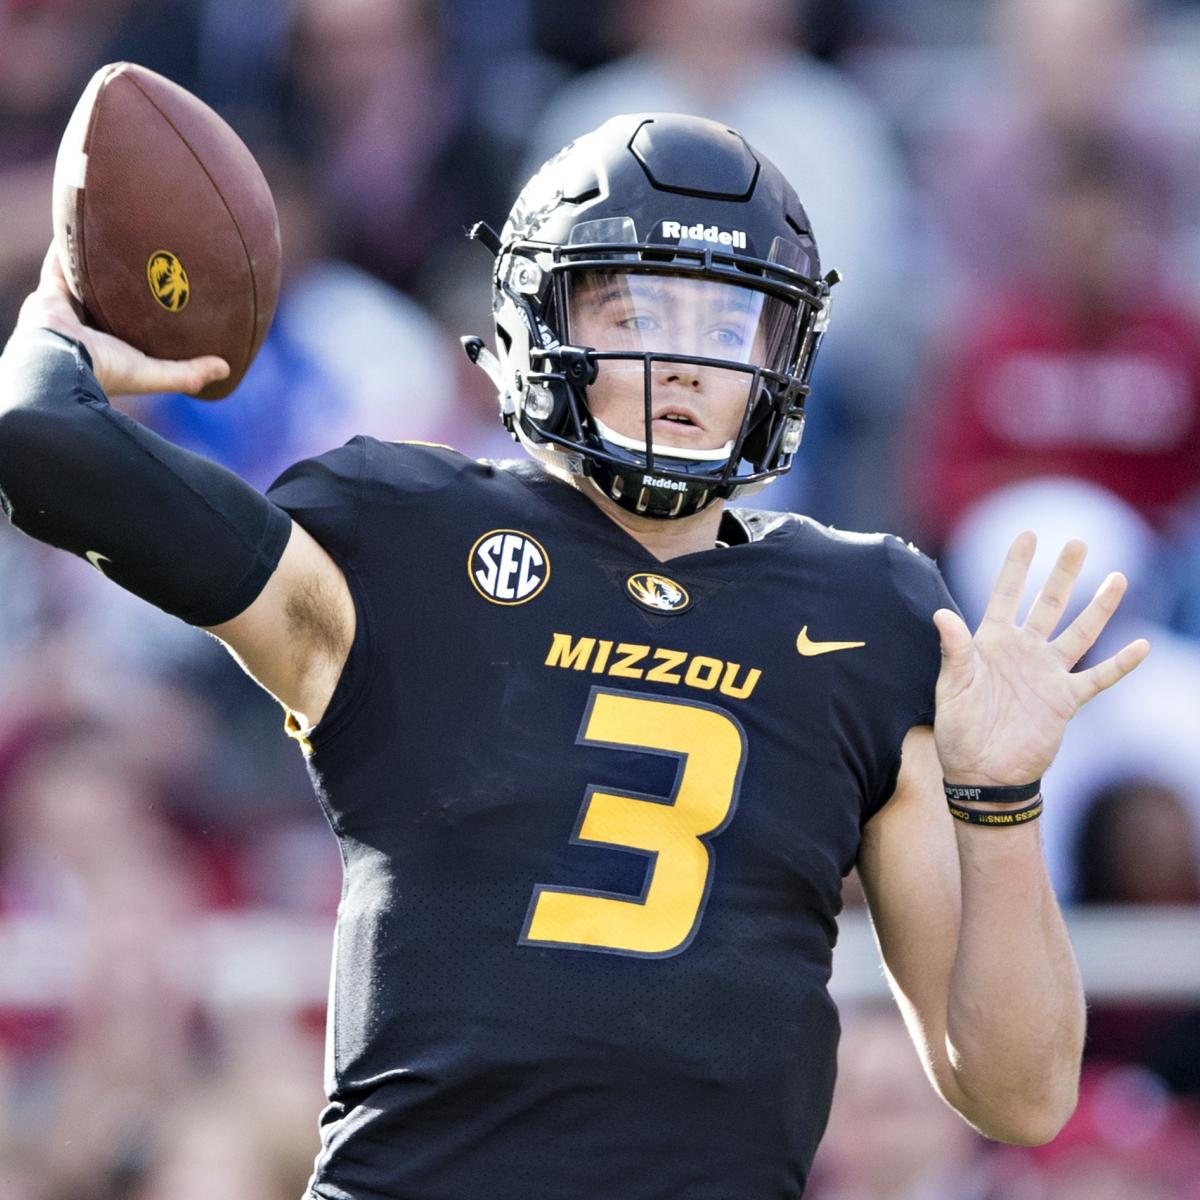 Best Quarterback Prospects 2019 A Way Too Early Look at the Potential 2019 NFL Draft QB Class